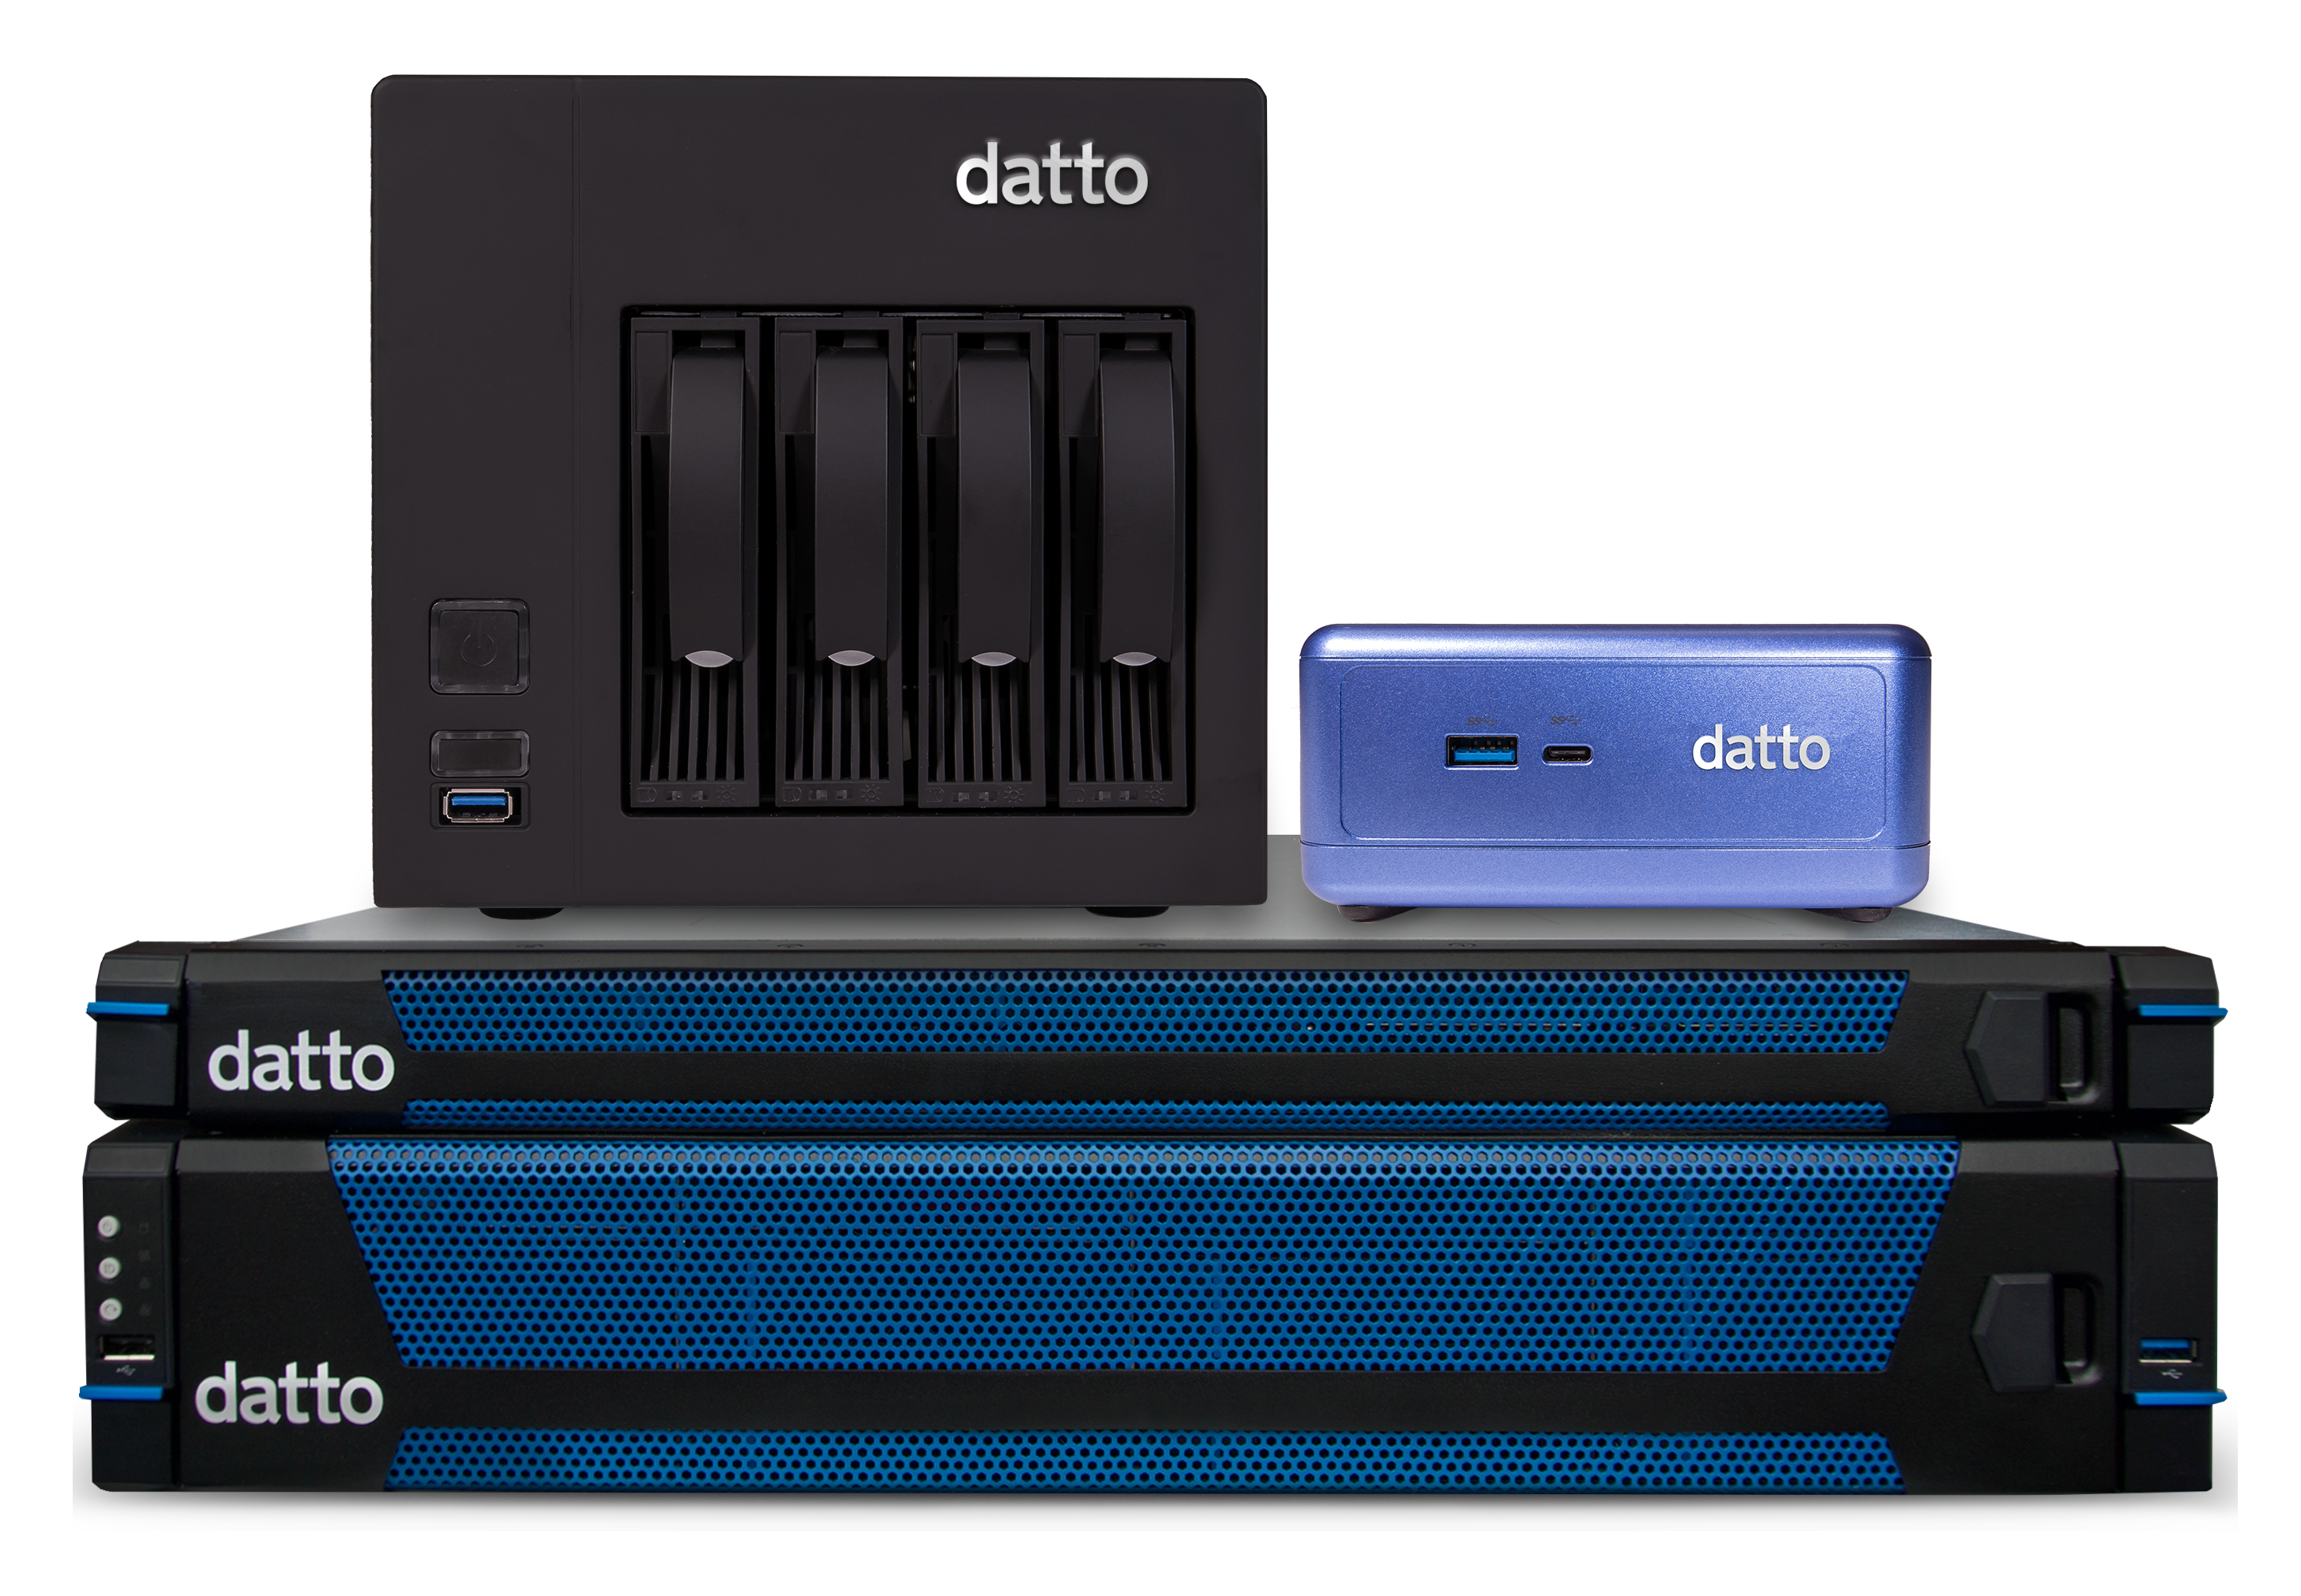 datto-products.png